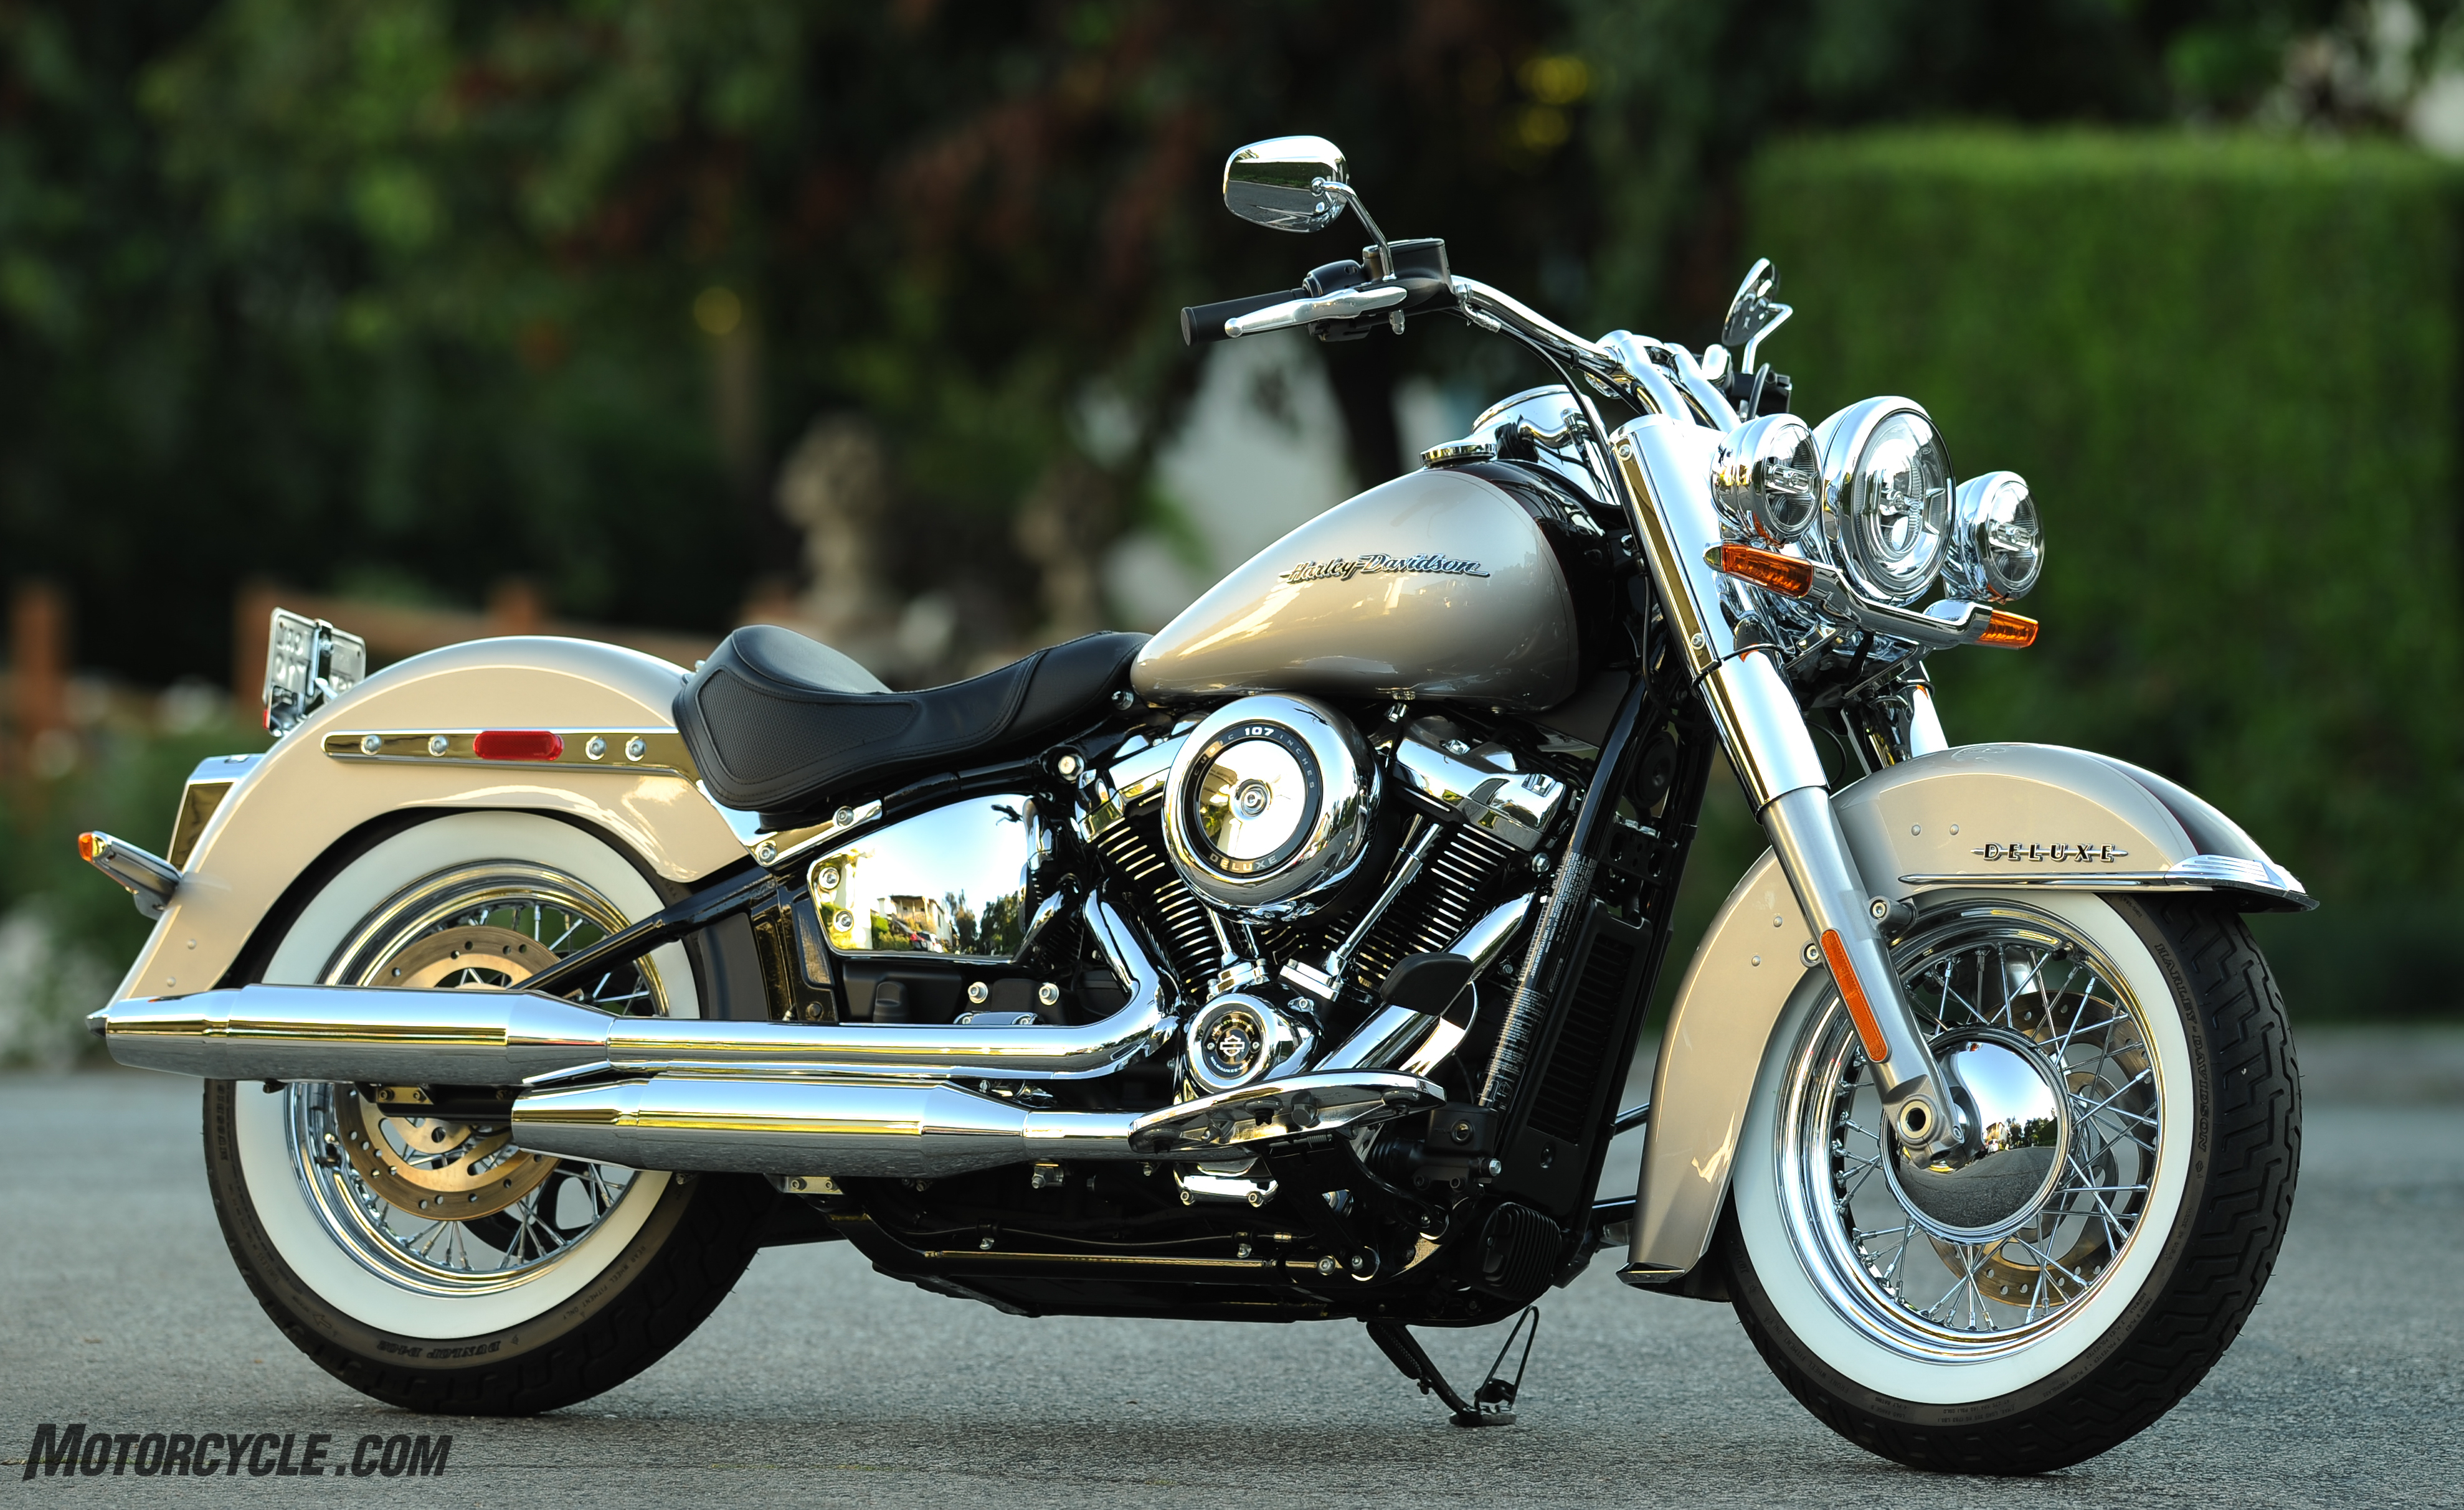 2018 Harley-Davidson Deluxe Review – First Ride